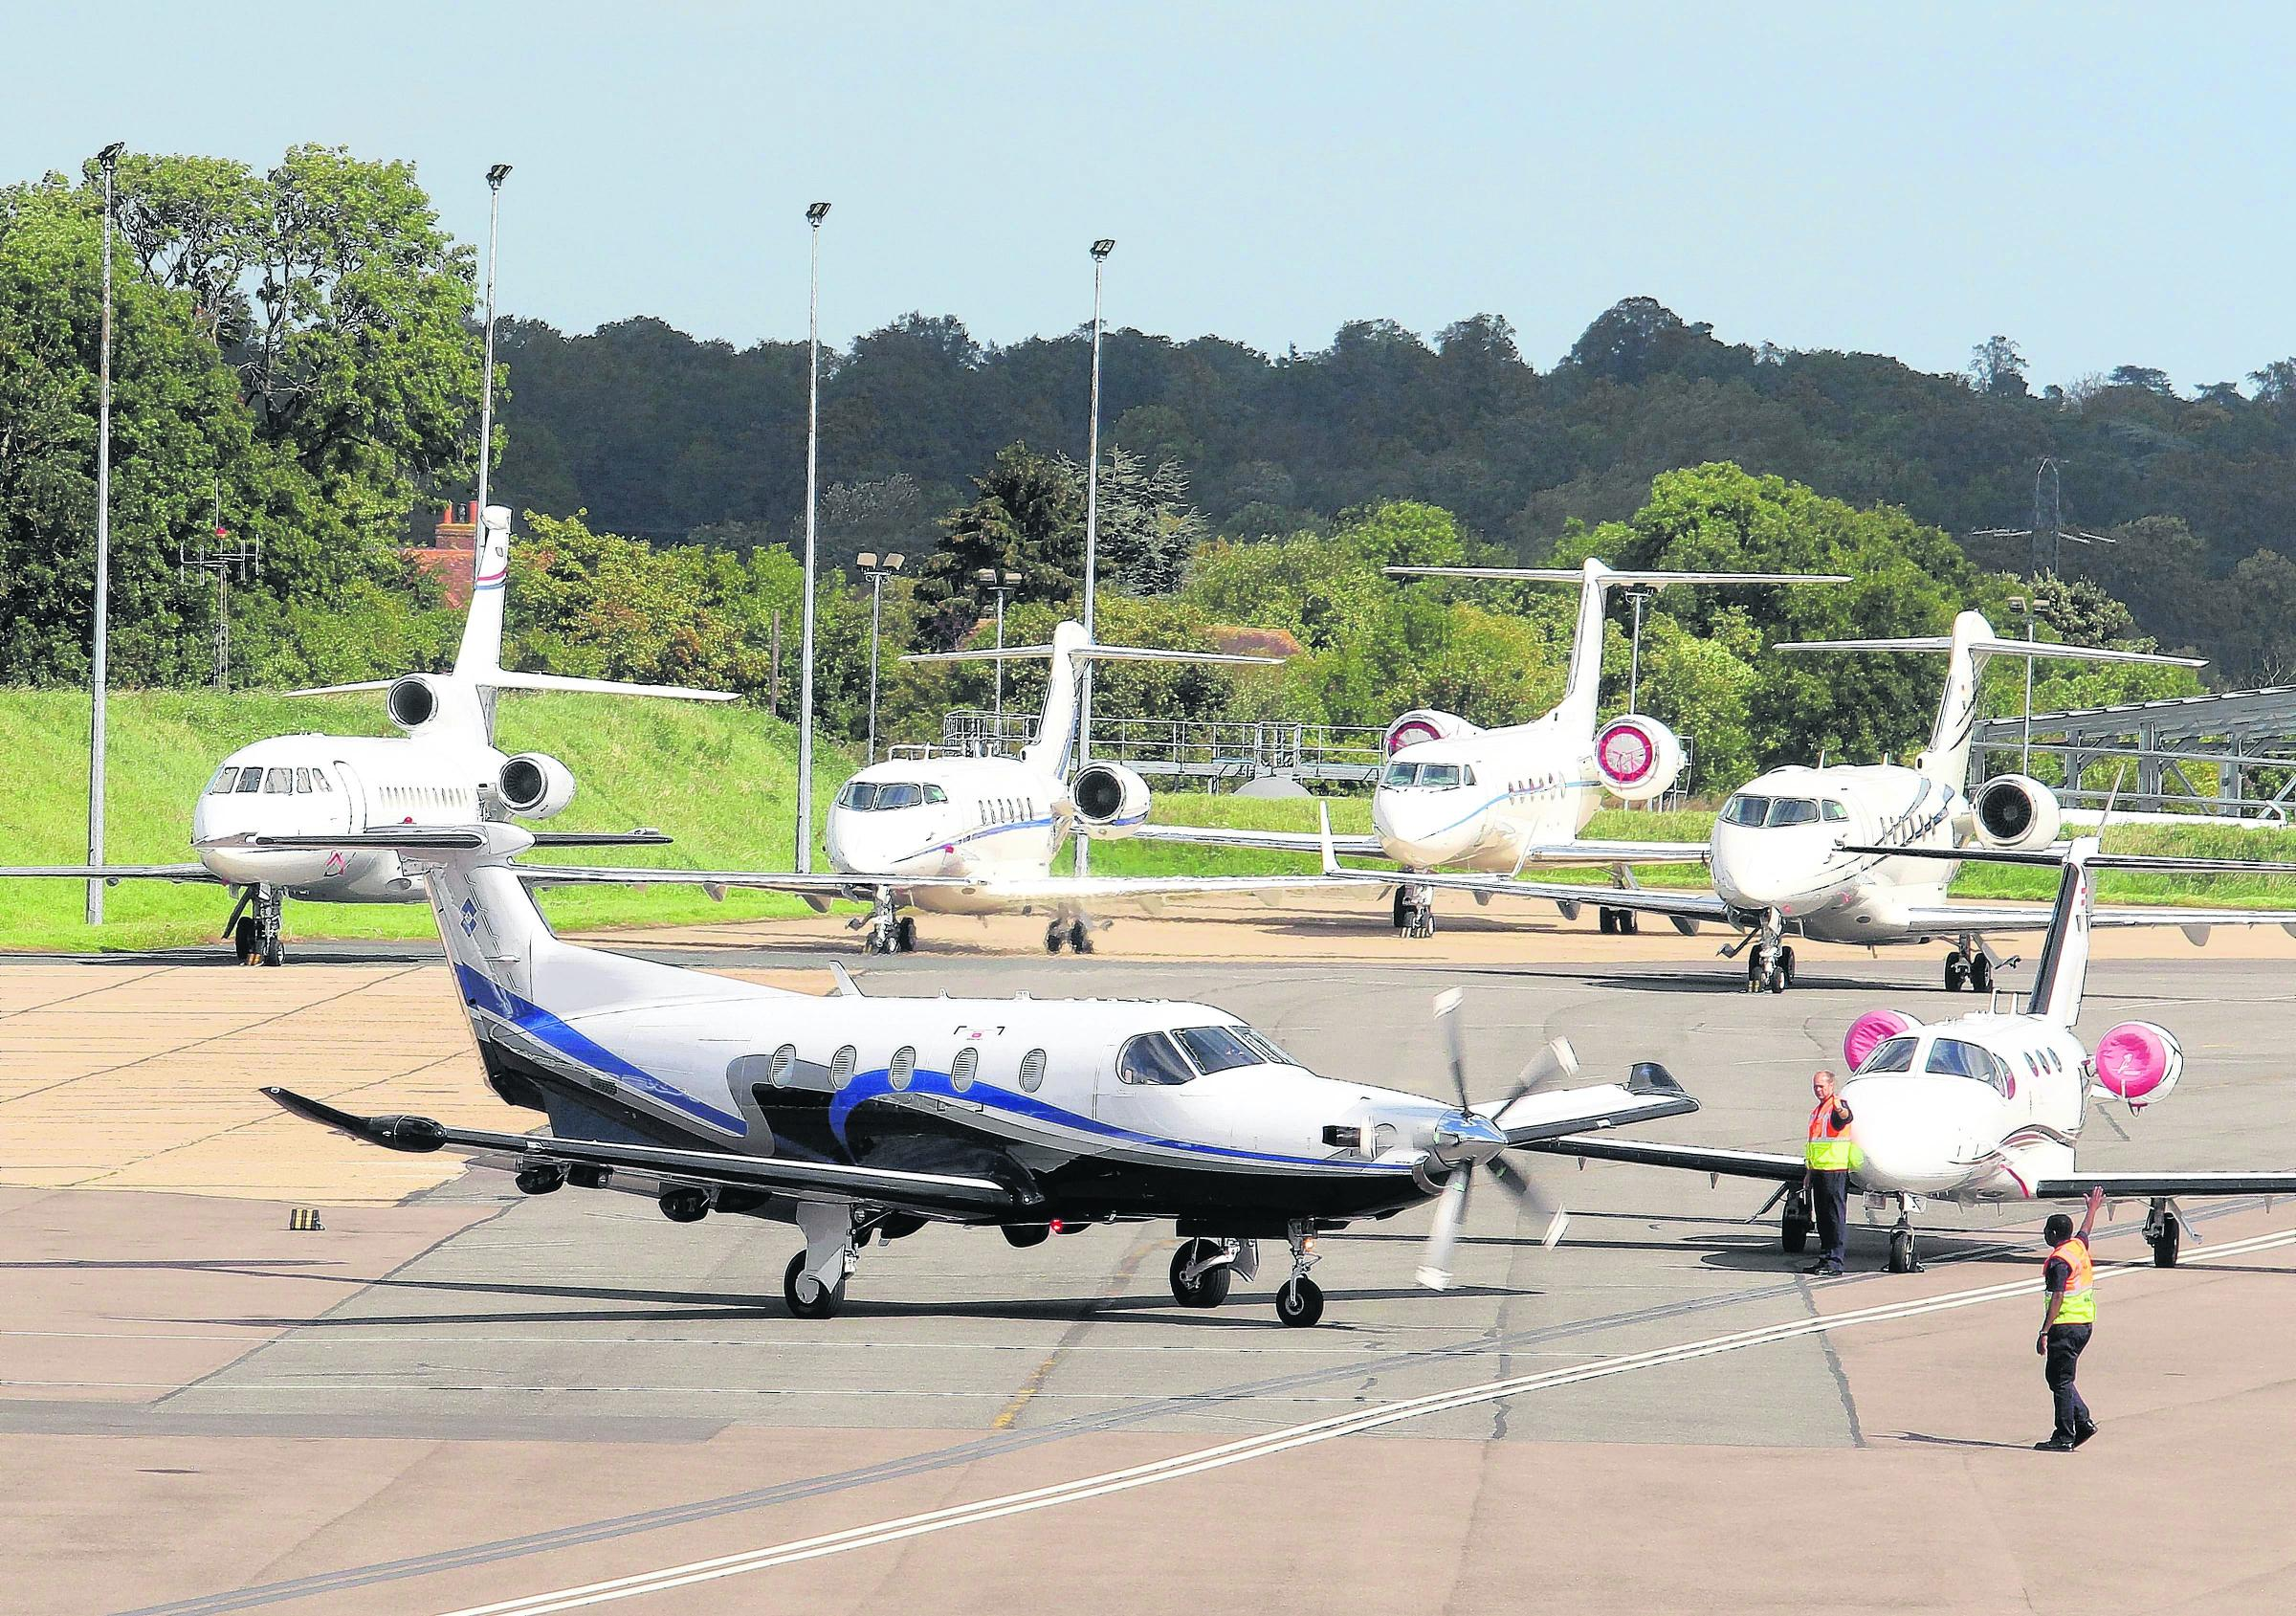 Biggin Hill Airport are preparing to introduce a new noise limit